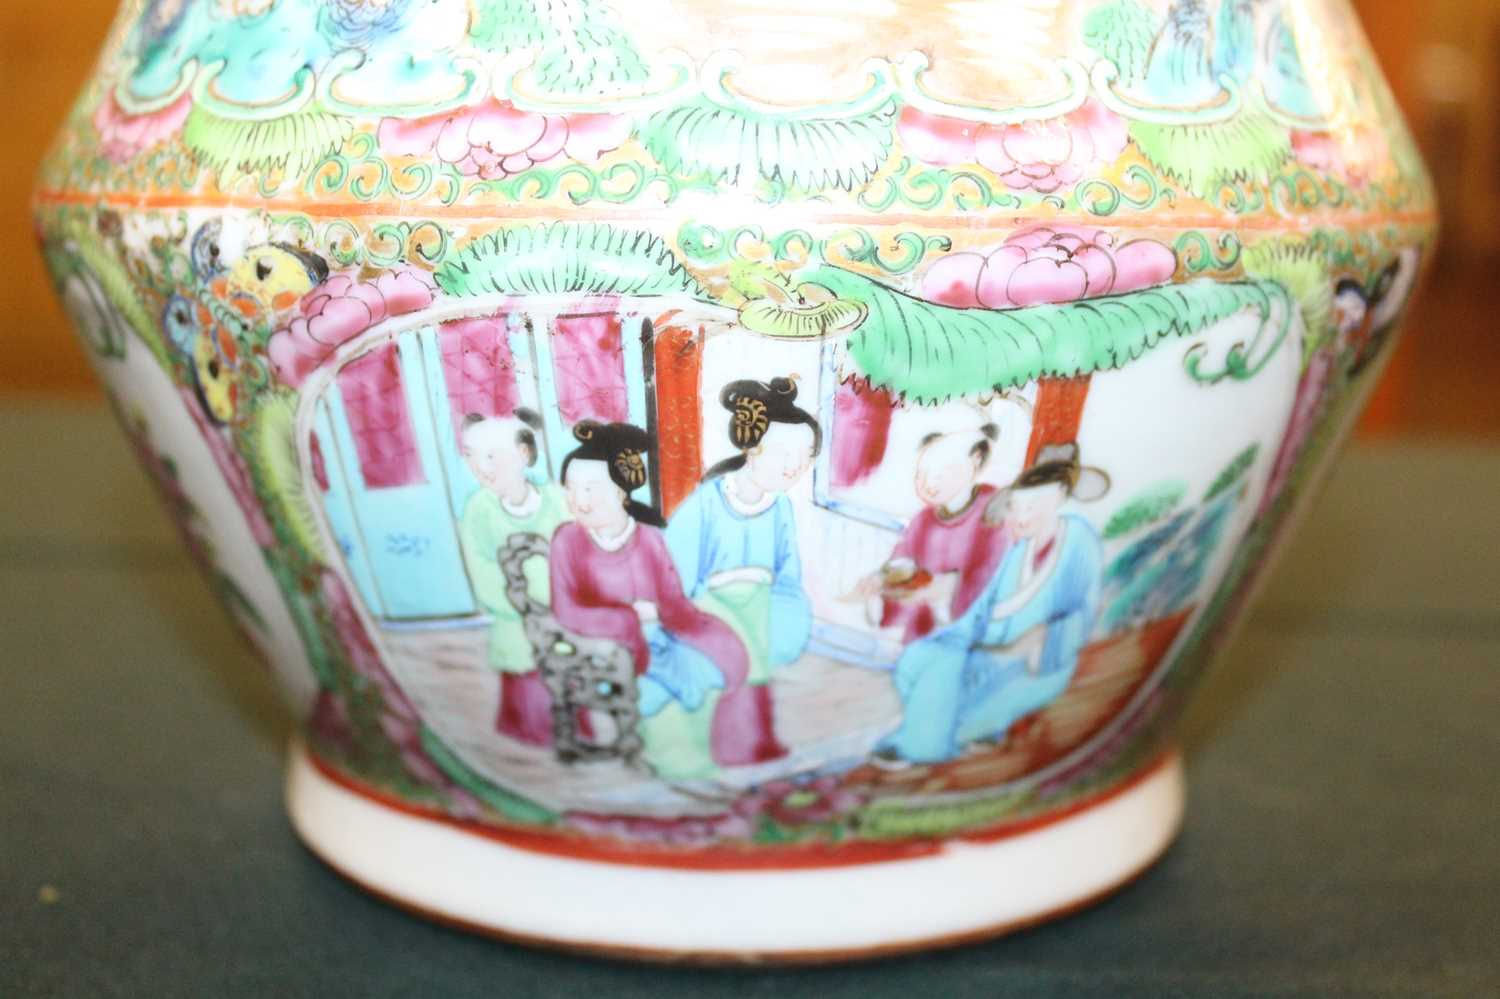 A 19th century Chinese Canton famille rose vase, enamel decorated with ceremonial figure scenes - Image 12 of 18